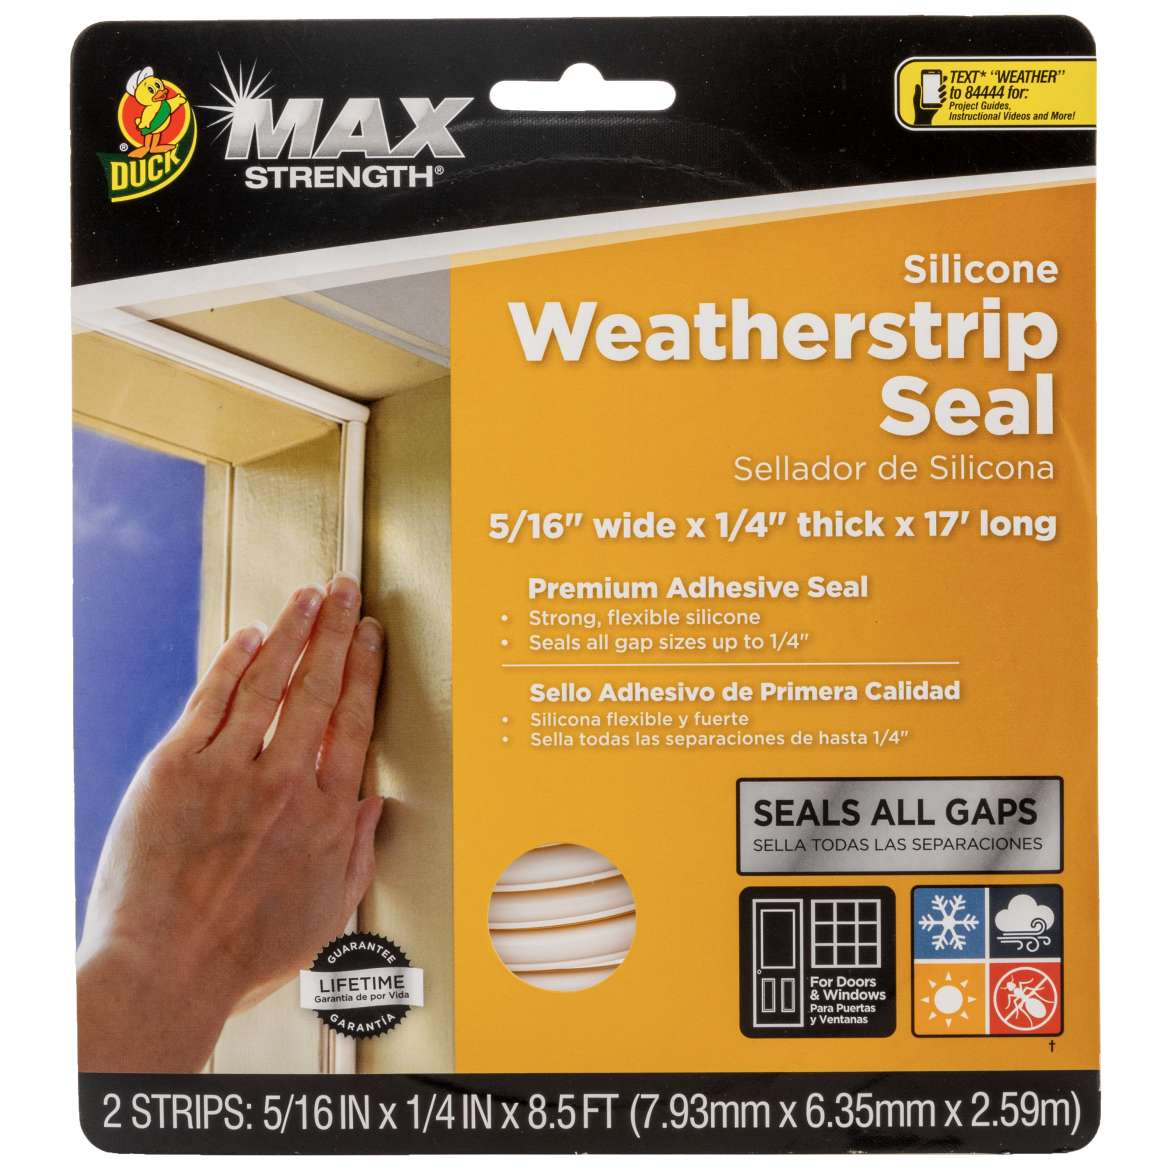 Max Strength Silicone Weatherstrip Seal